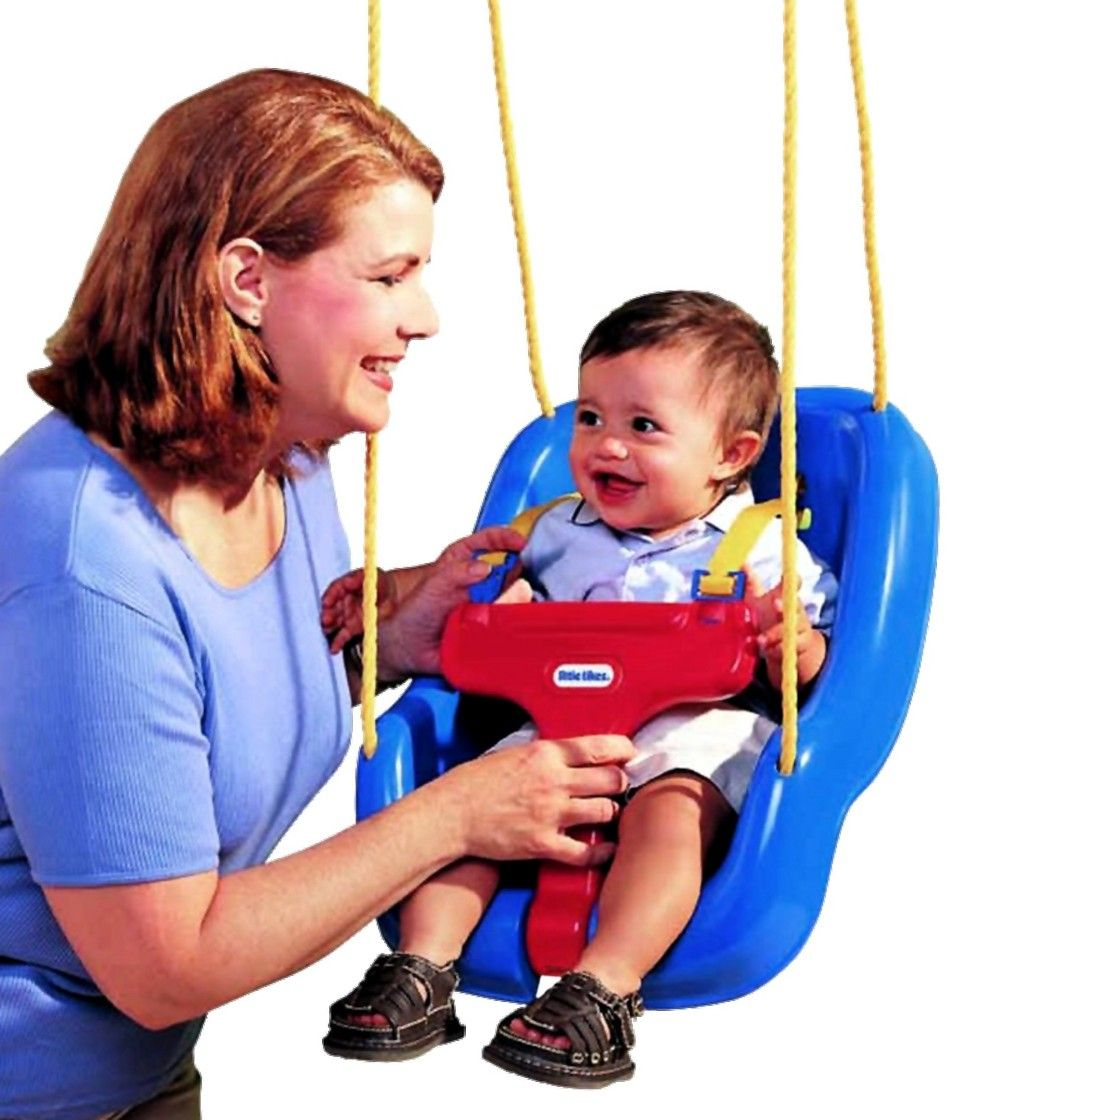 Little Tikes Snug N' Secure Swing